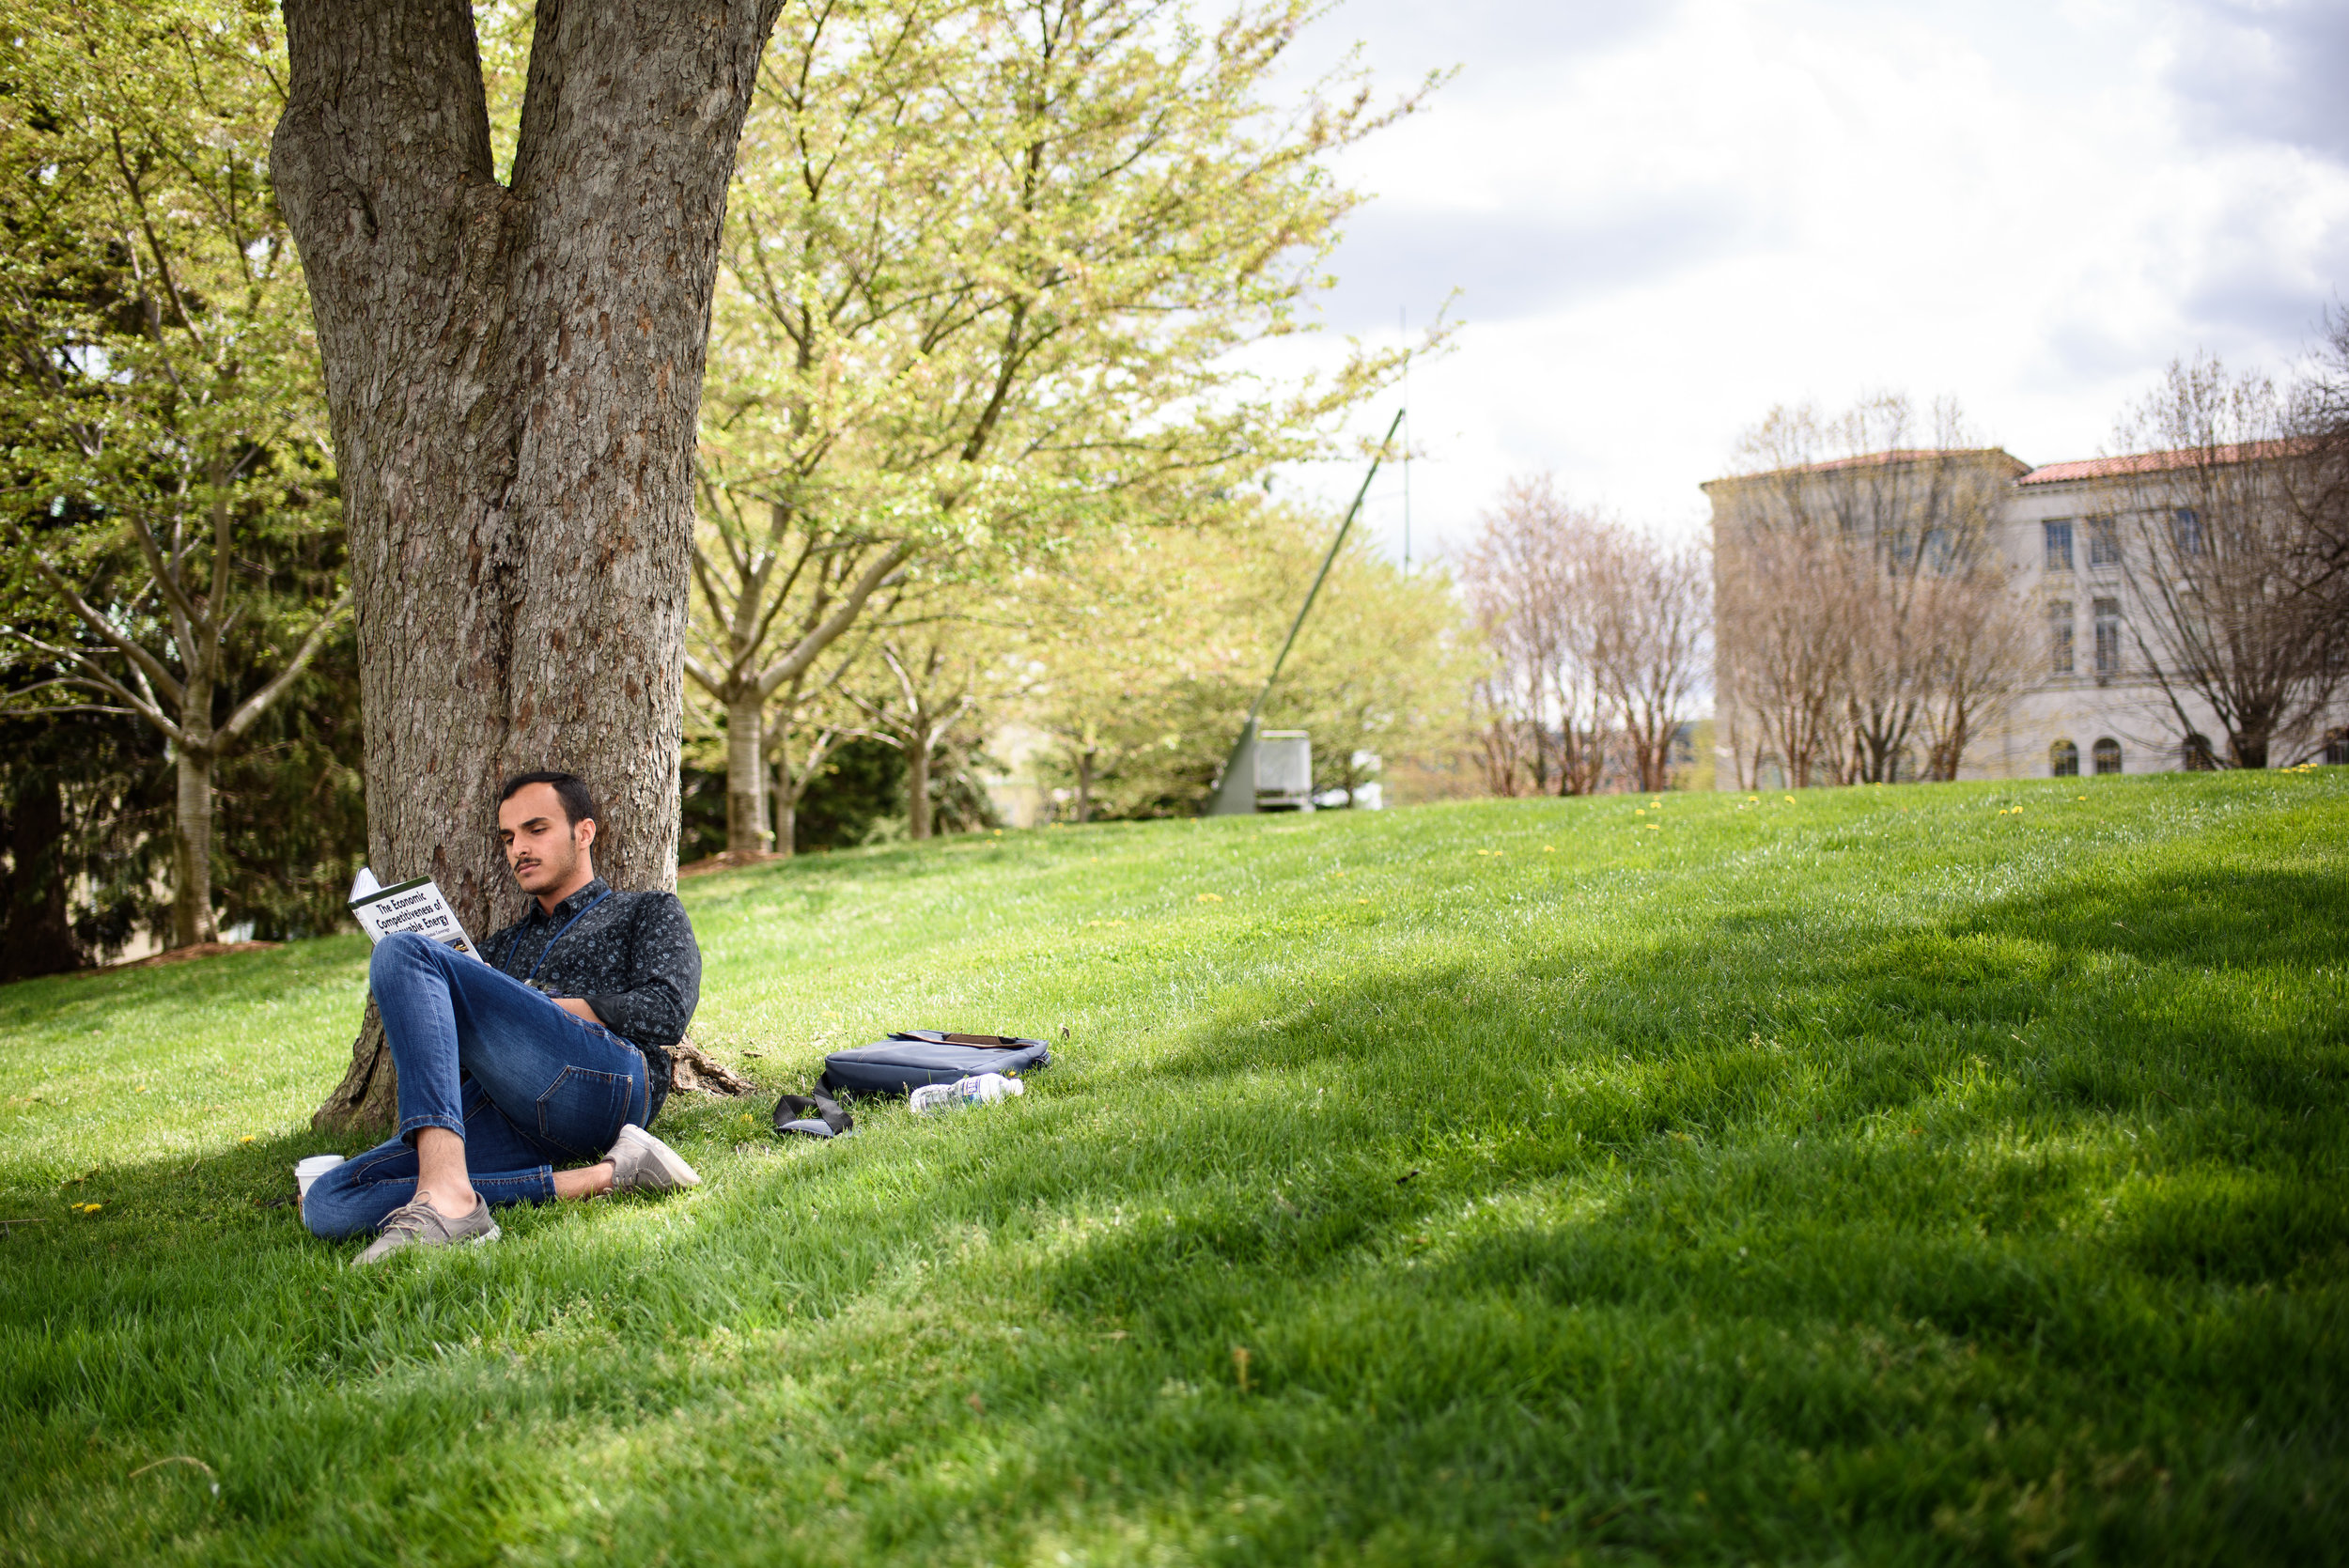 Catholic University student reading a book under a tree in Washington, DC.